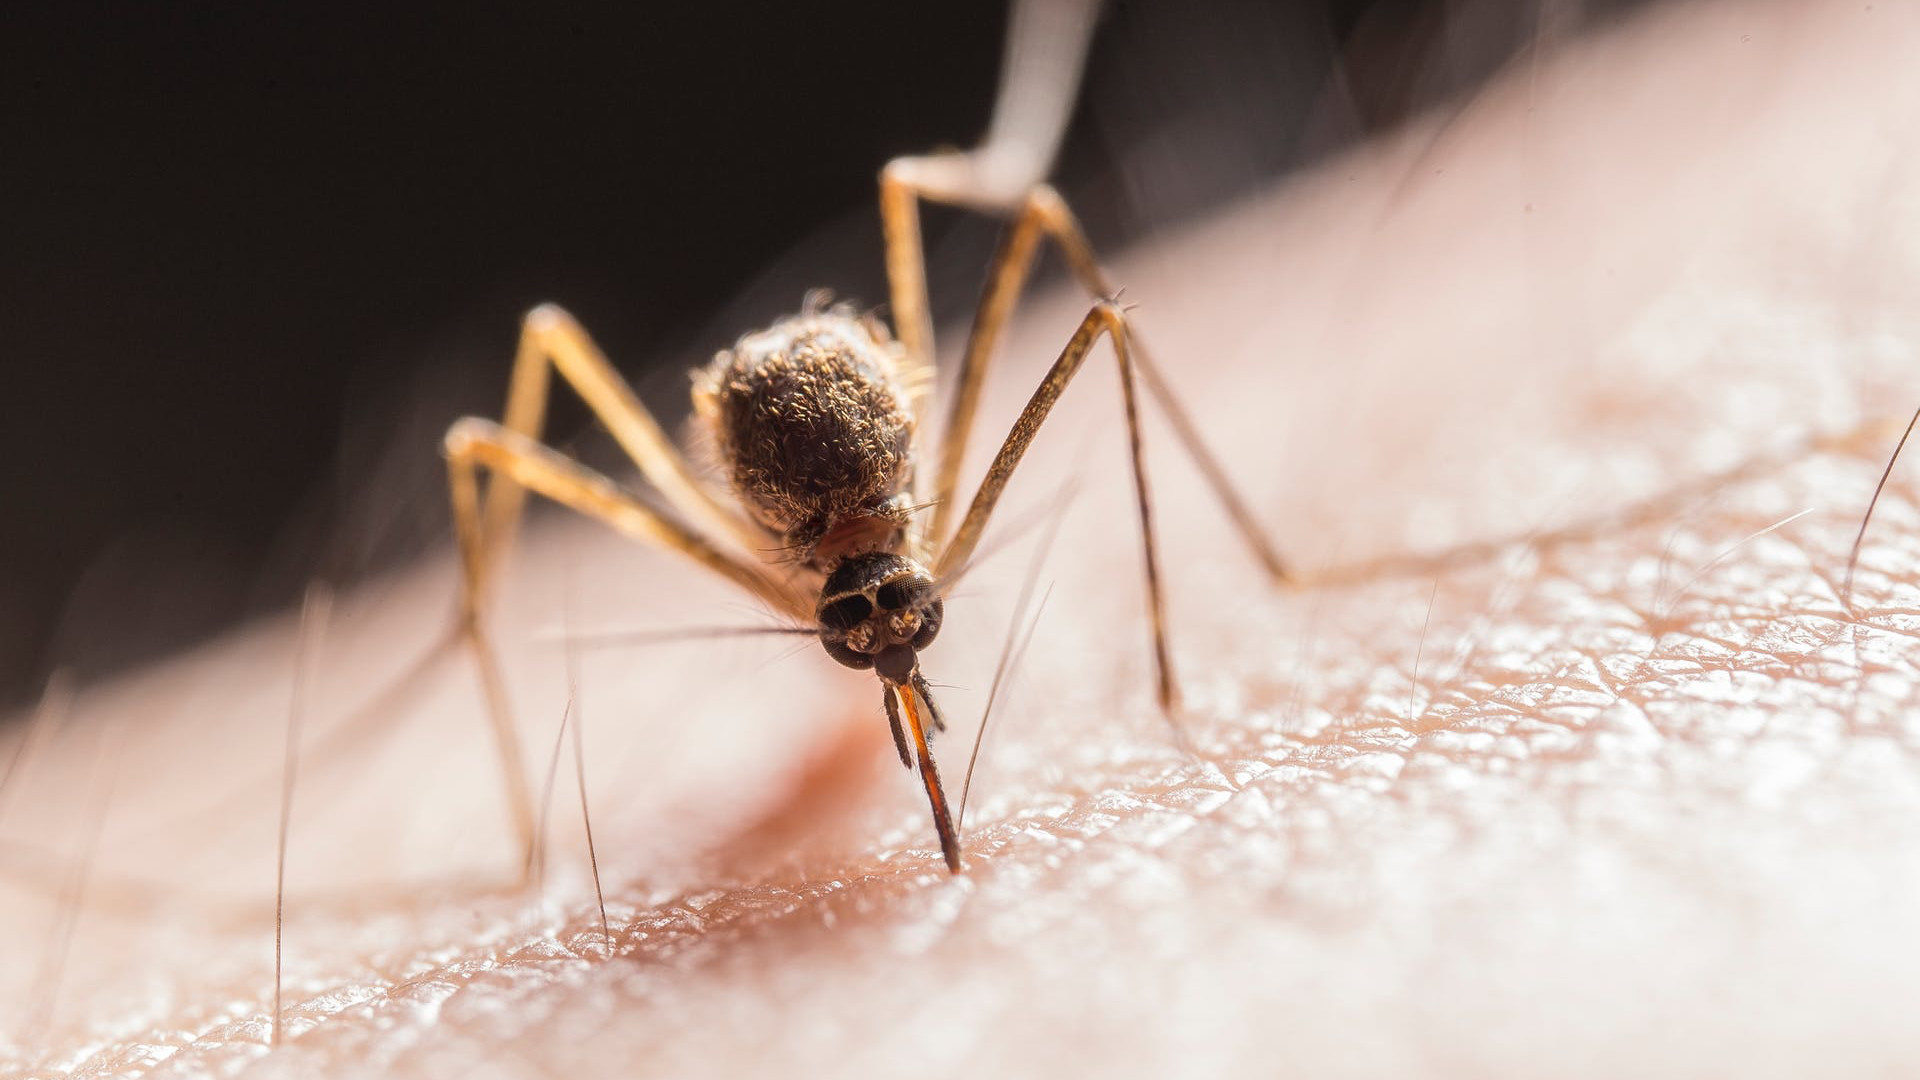 Mosquito drunk alcohol in blood